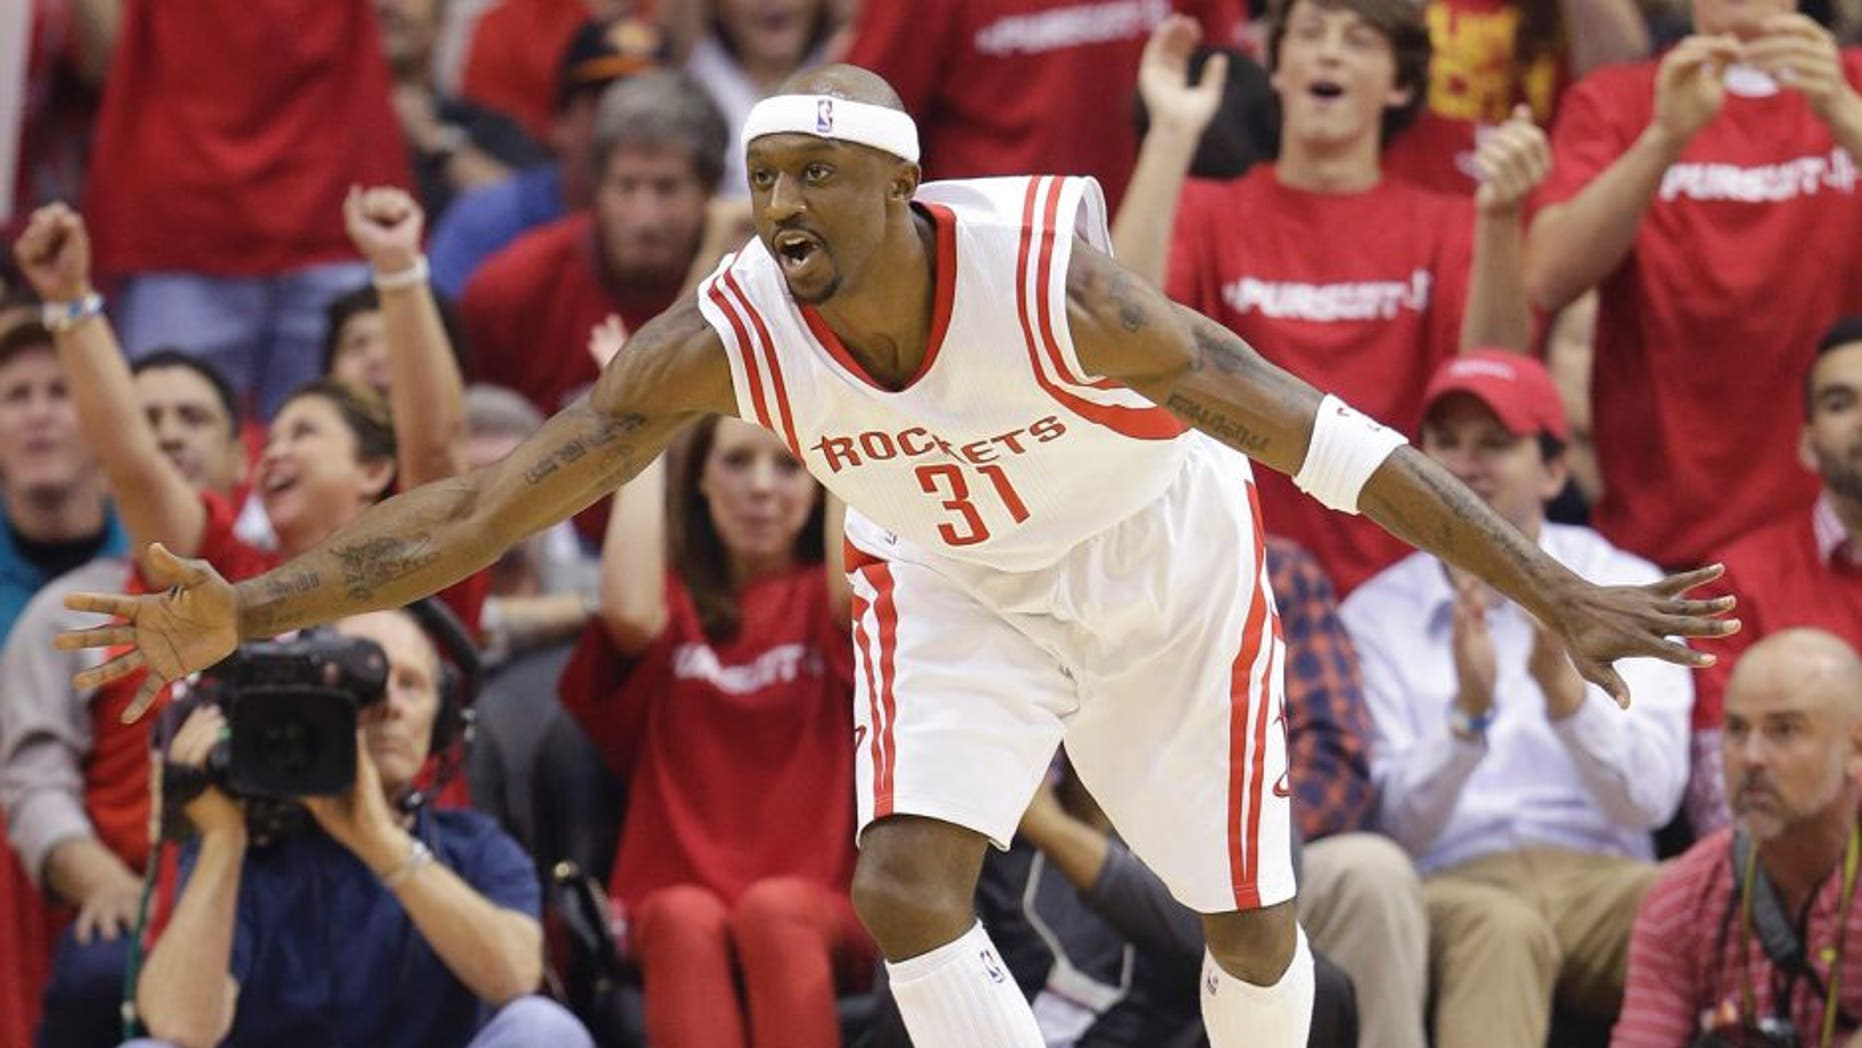 Houston Rockets' Jason Terry (31) celebrates a score against the Dallas Mavericks during the first quarter of game 1 in the first round of the NBA basketball playoffs Saturday, April 18, 2015, in Houston. (AP Photo/David J. Phillip)